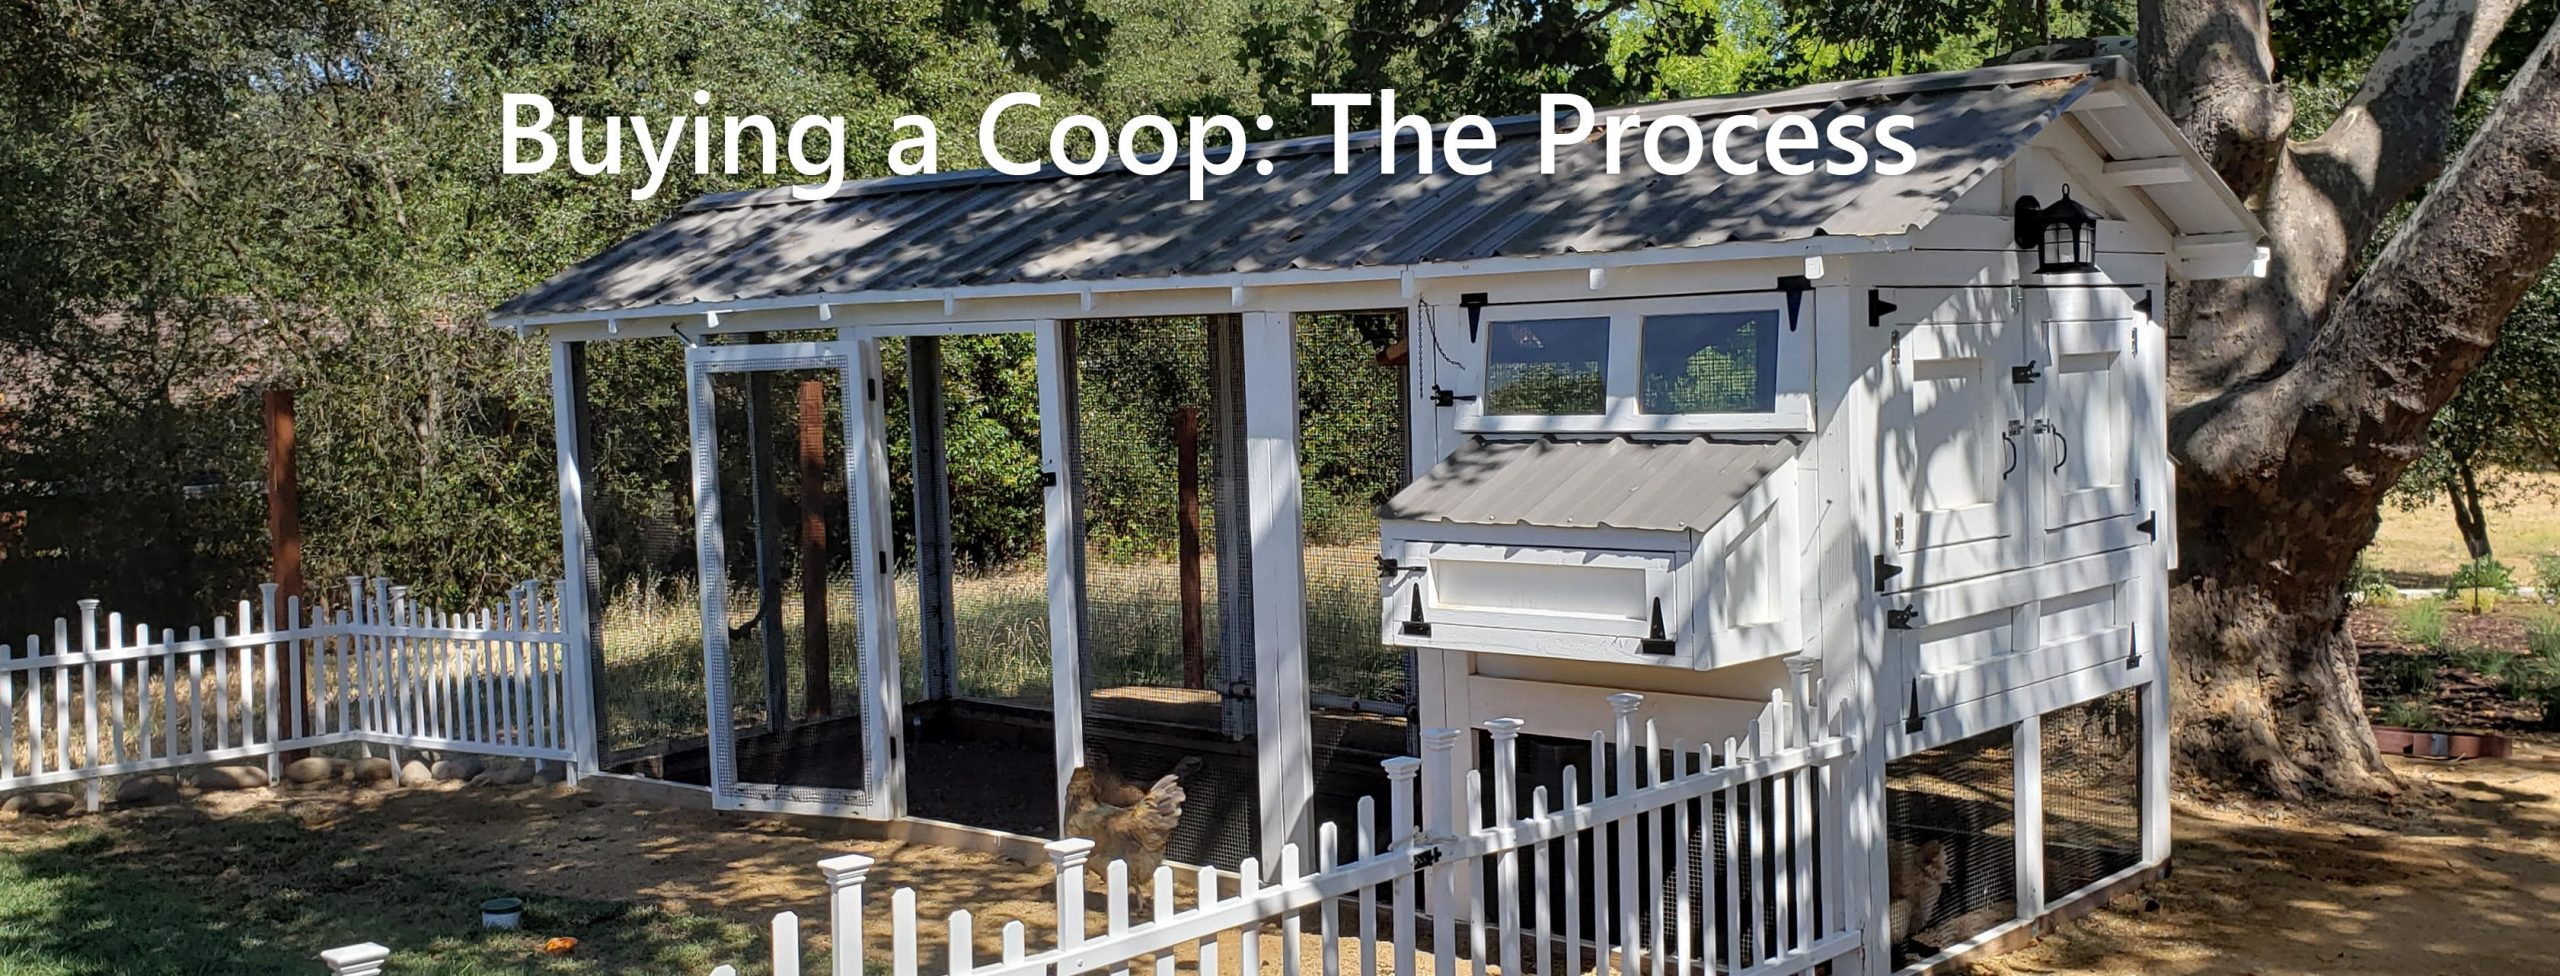 Buying a chicken coop: the process